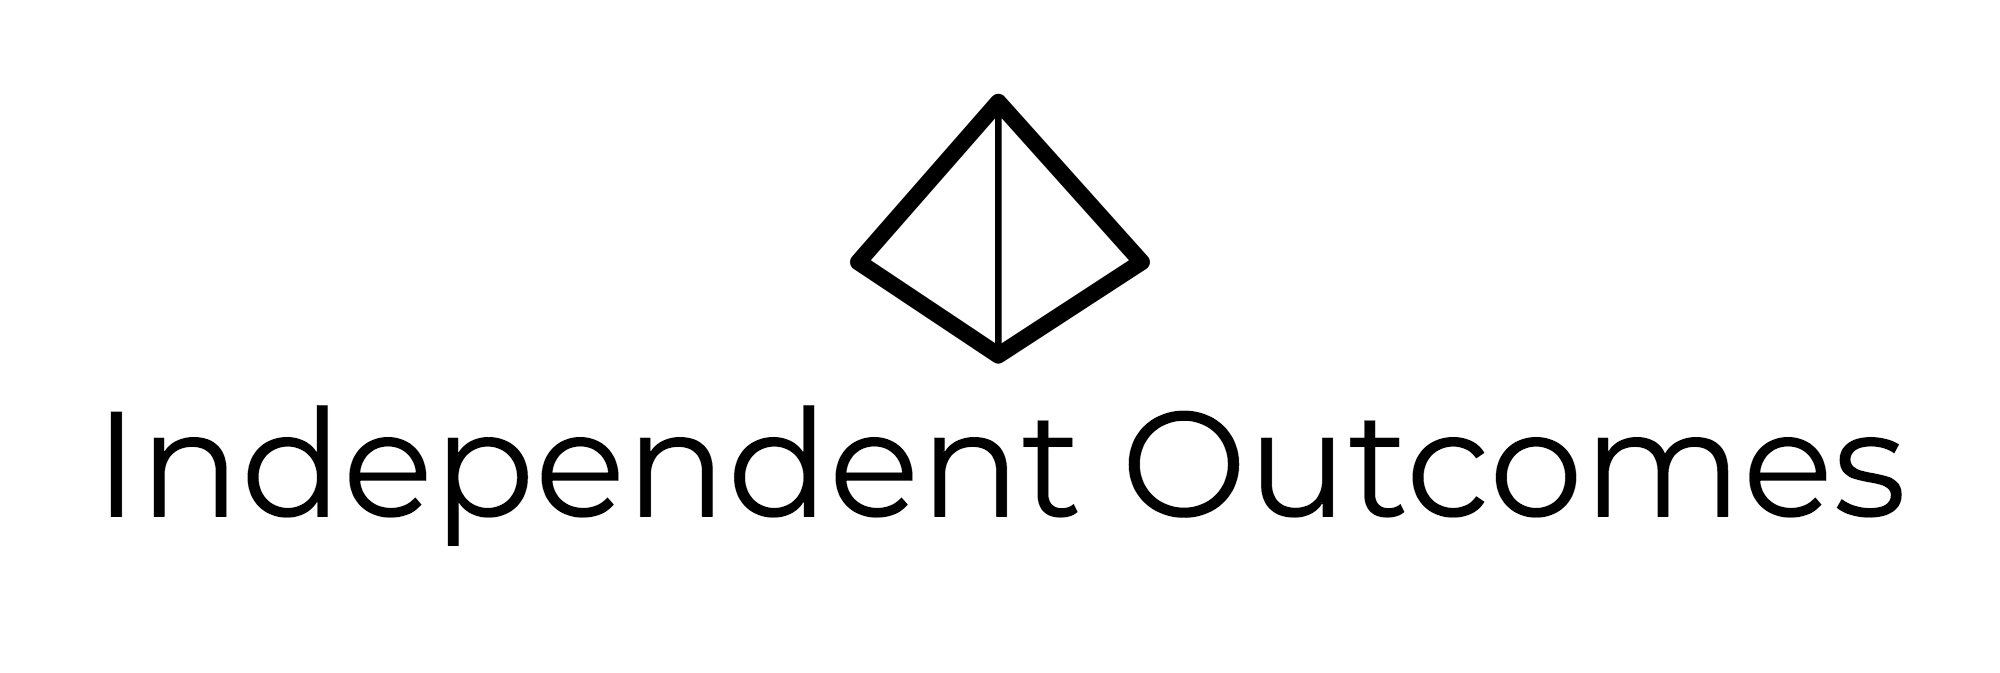 Independent+Outcomes-logo+%281%29.jpg